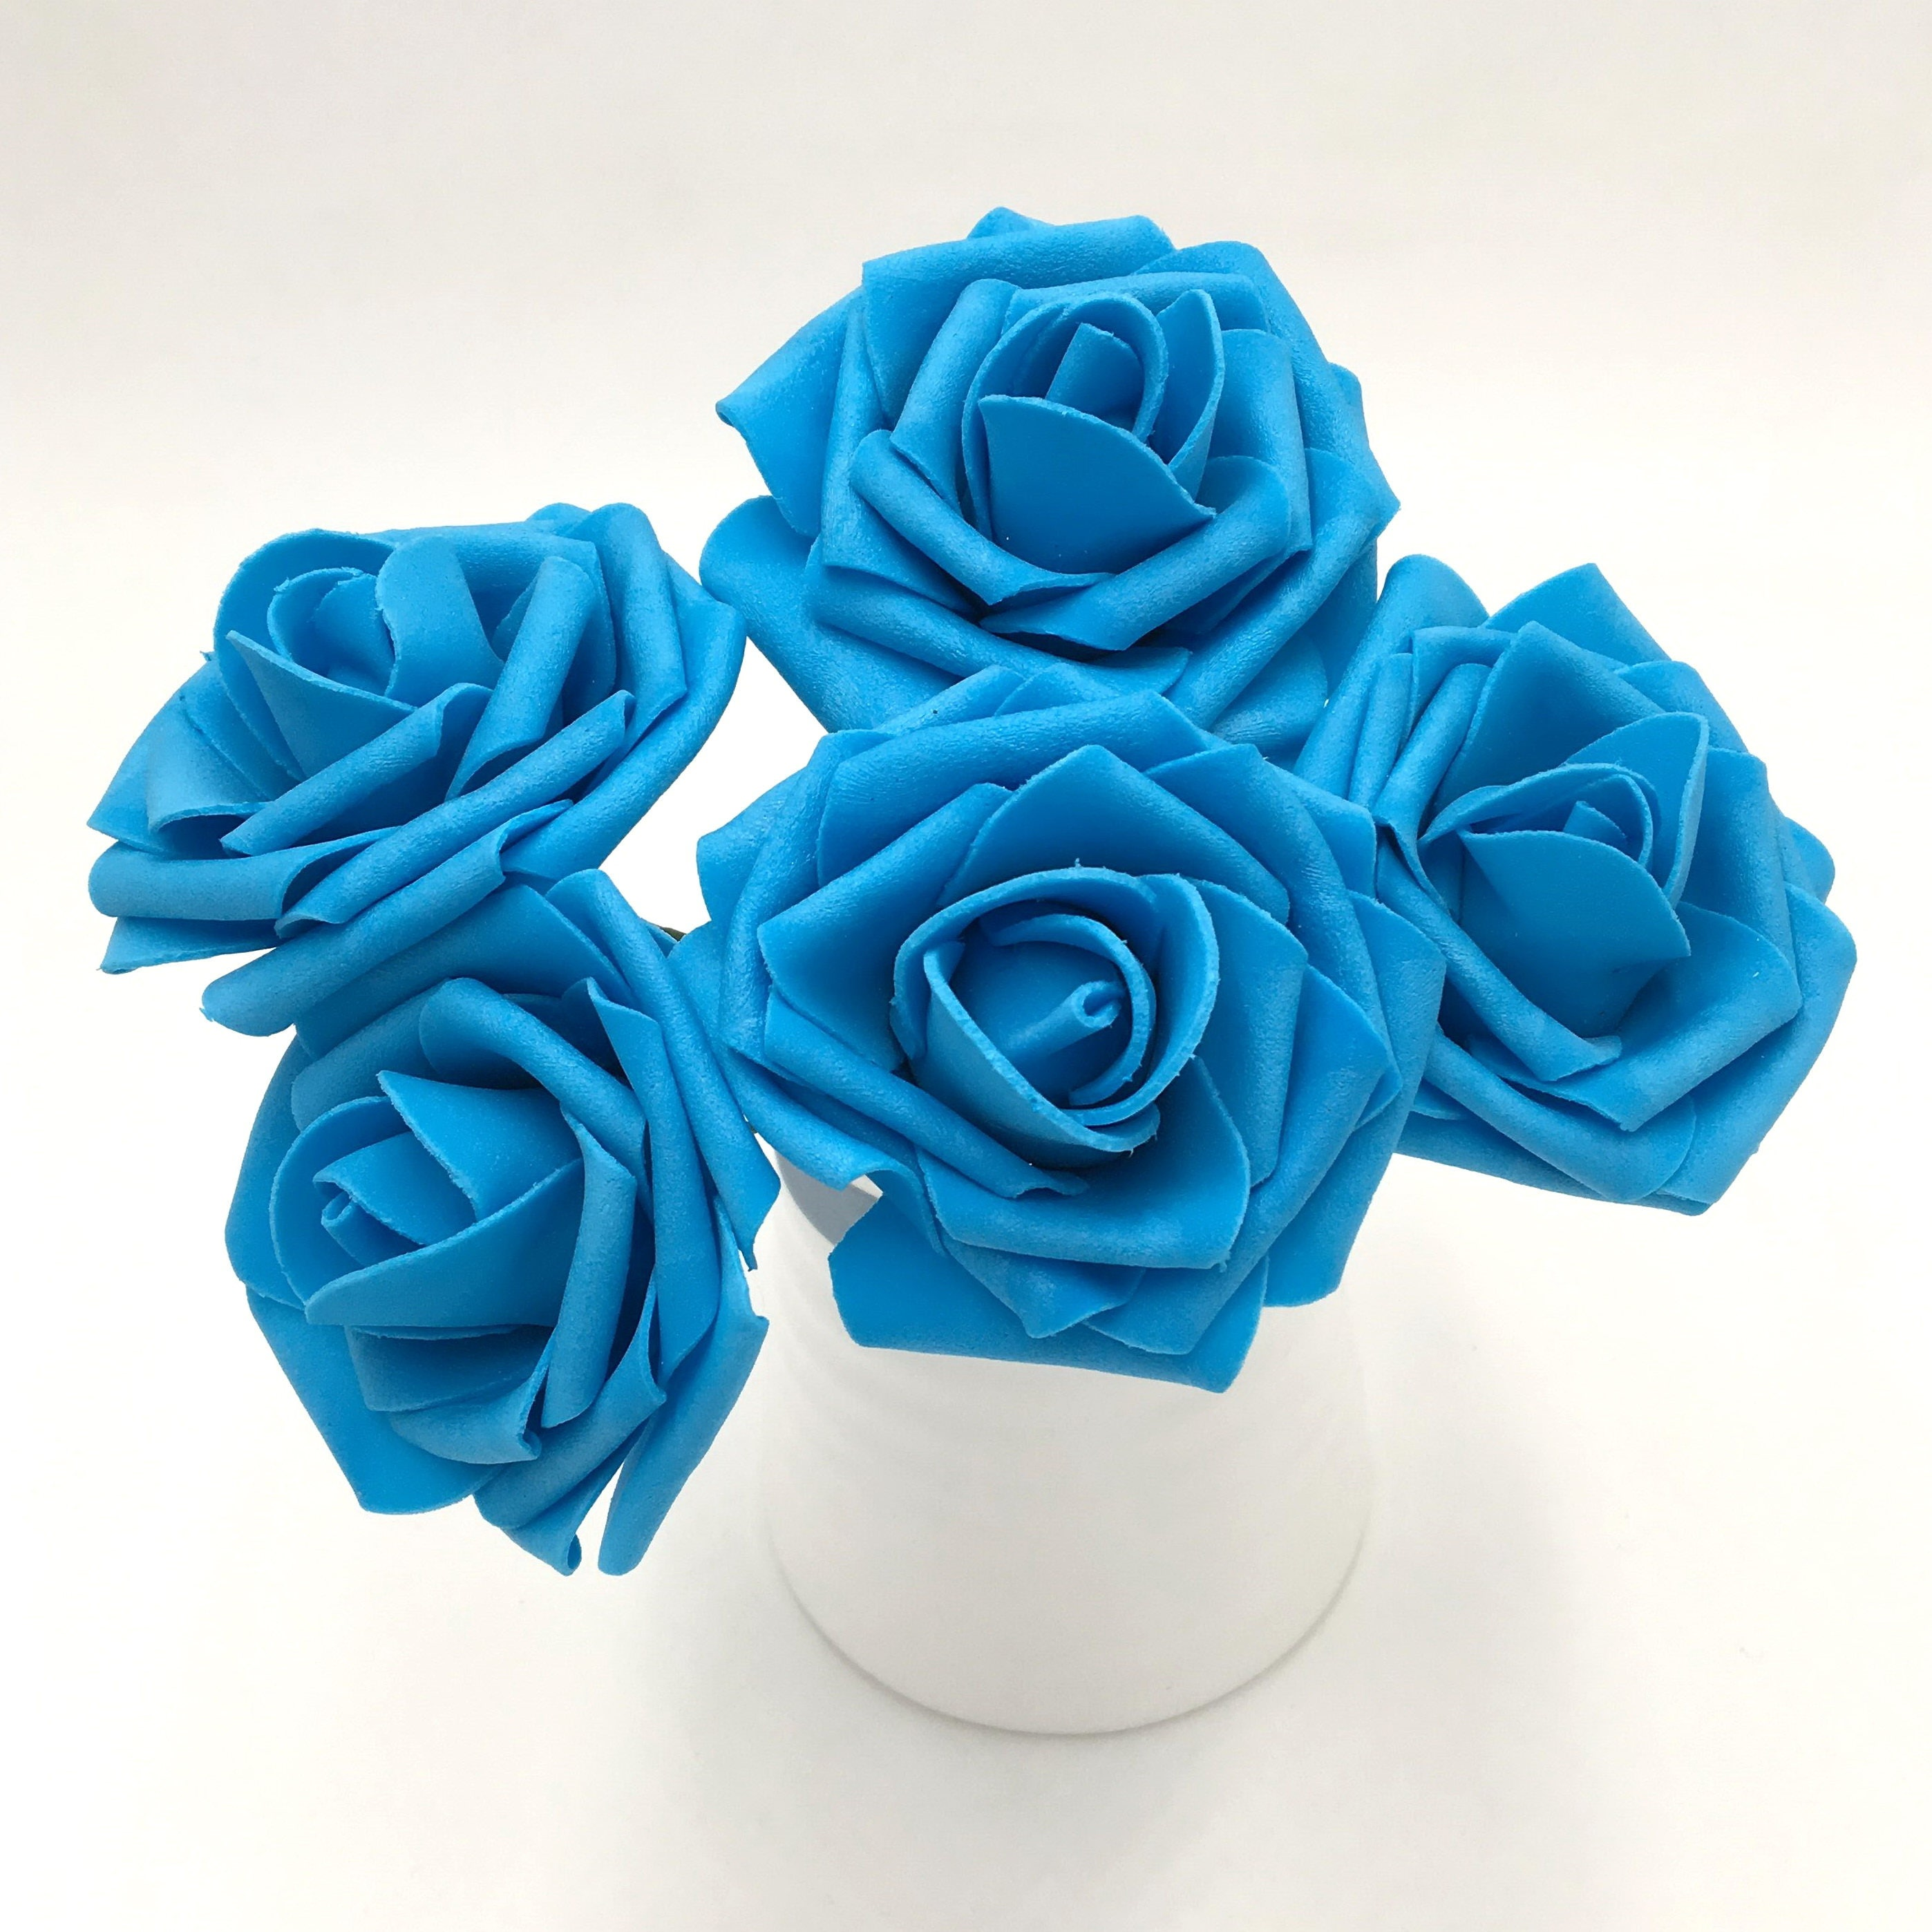 Fantastic Bulk Flowers Wedding Composition Blue Wedding Color